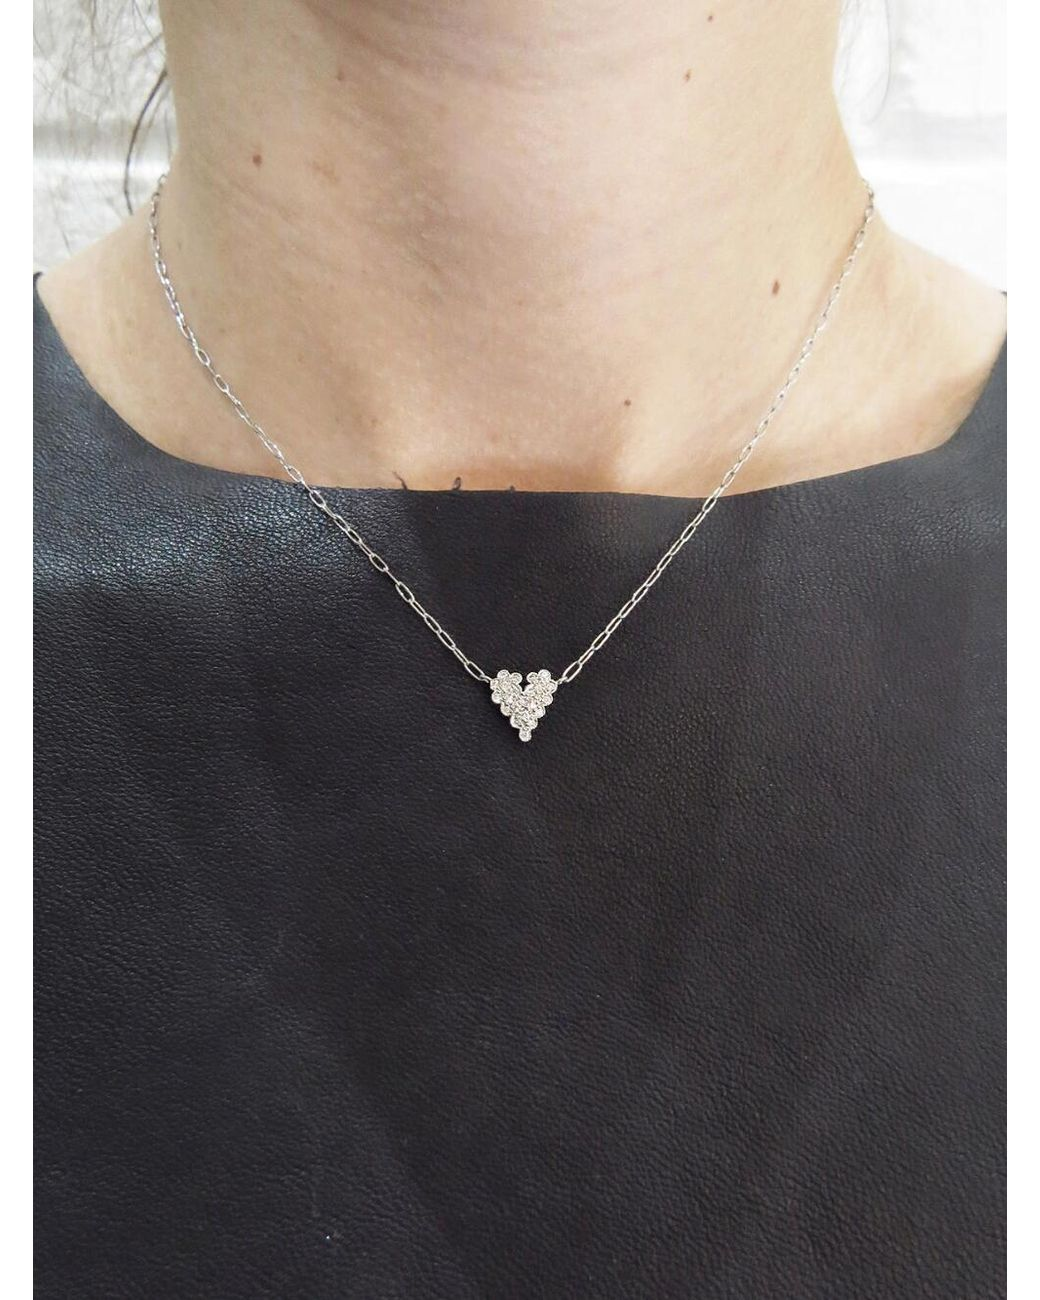 81e8f57e9f4 Cathy Waterman Scalloped Diamond Heart Necklace in Metallic - Lyst